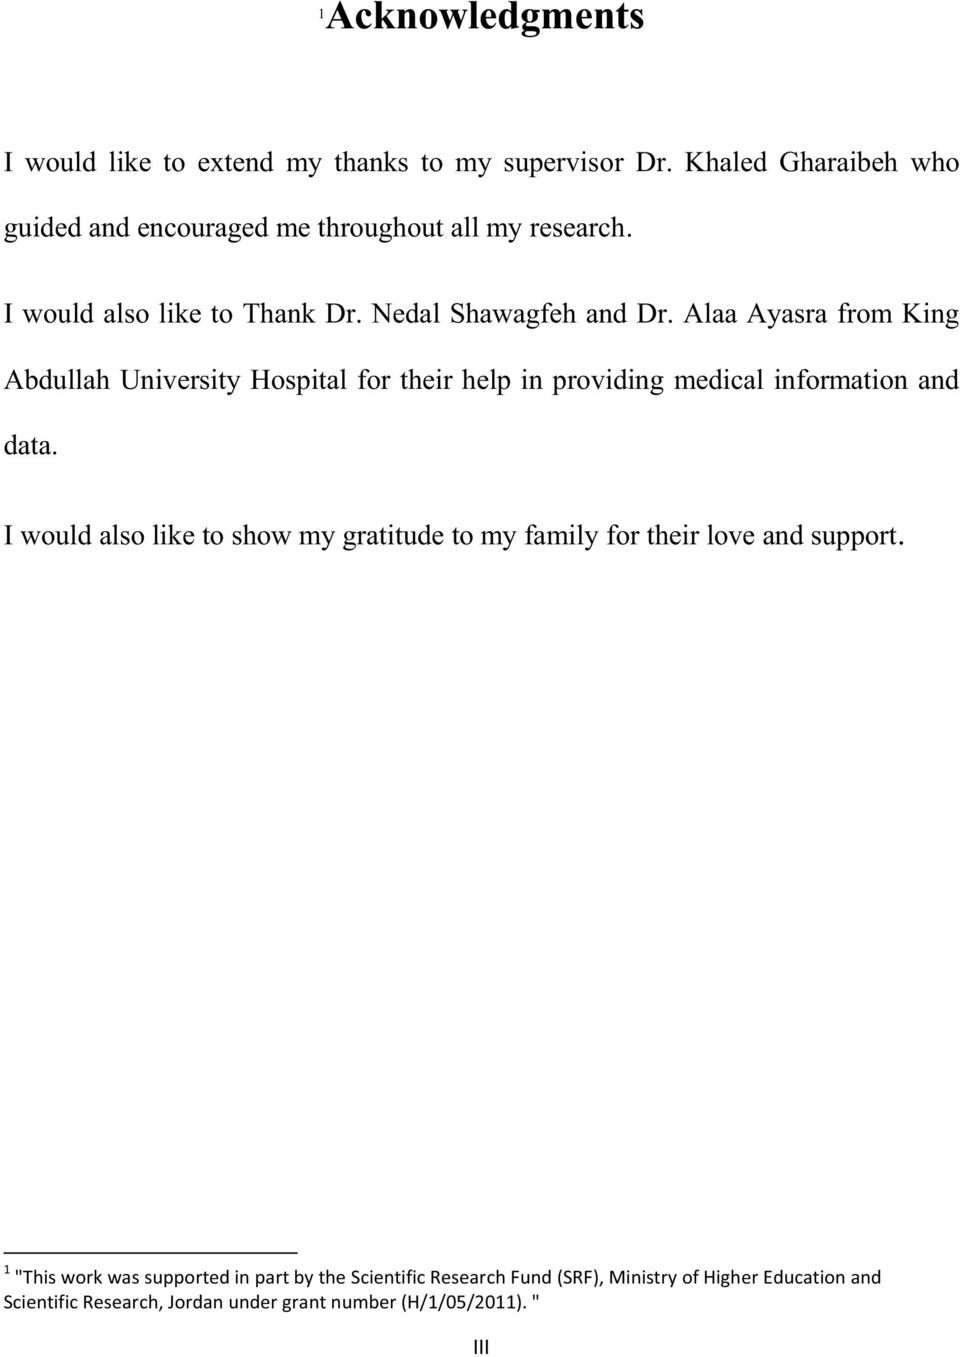 Alaa Ayasra from King Abdullah University Hospital for their help in providing medical information and data.